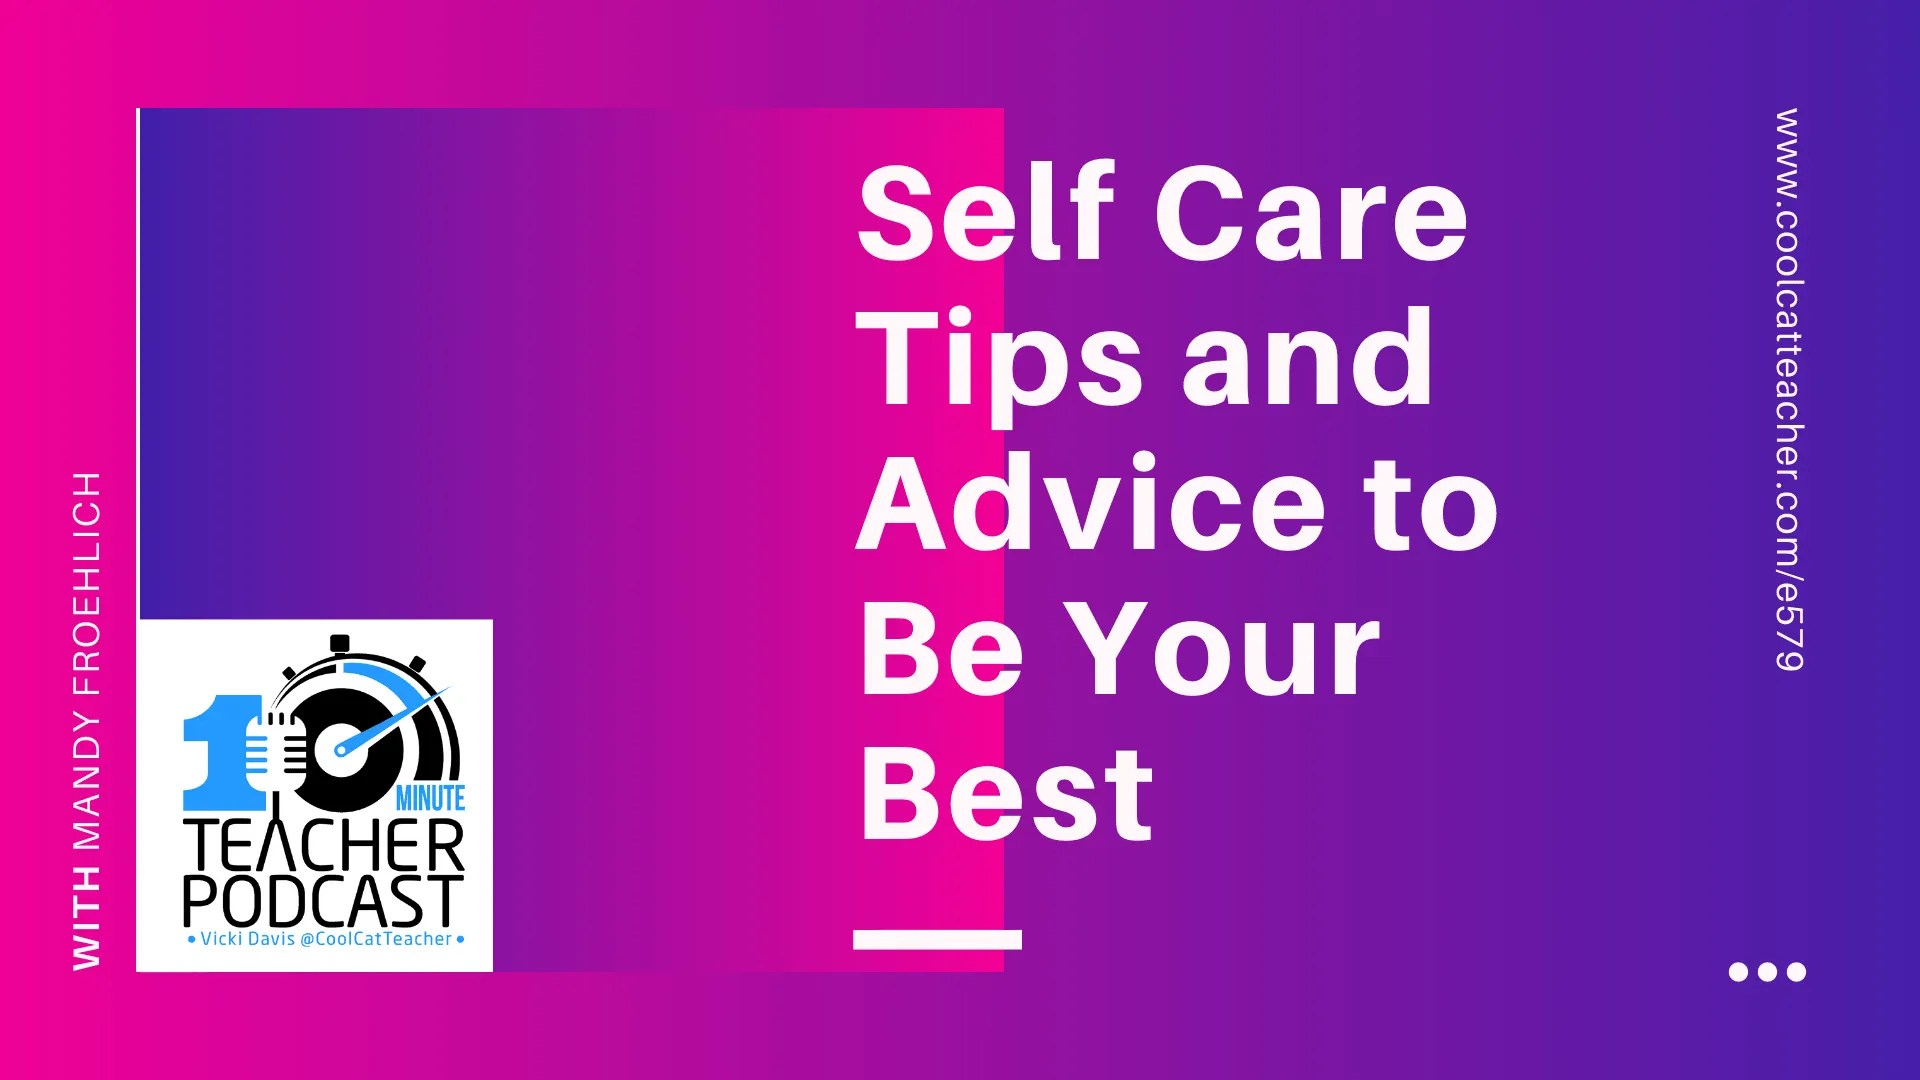 Self Care Tips and Advice to Be Your Best @coolcatteacher